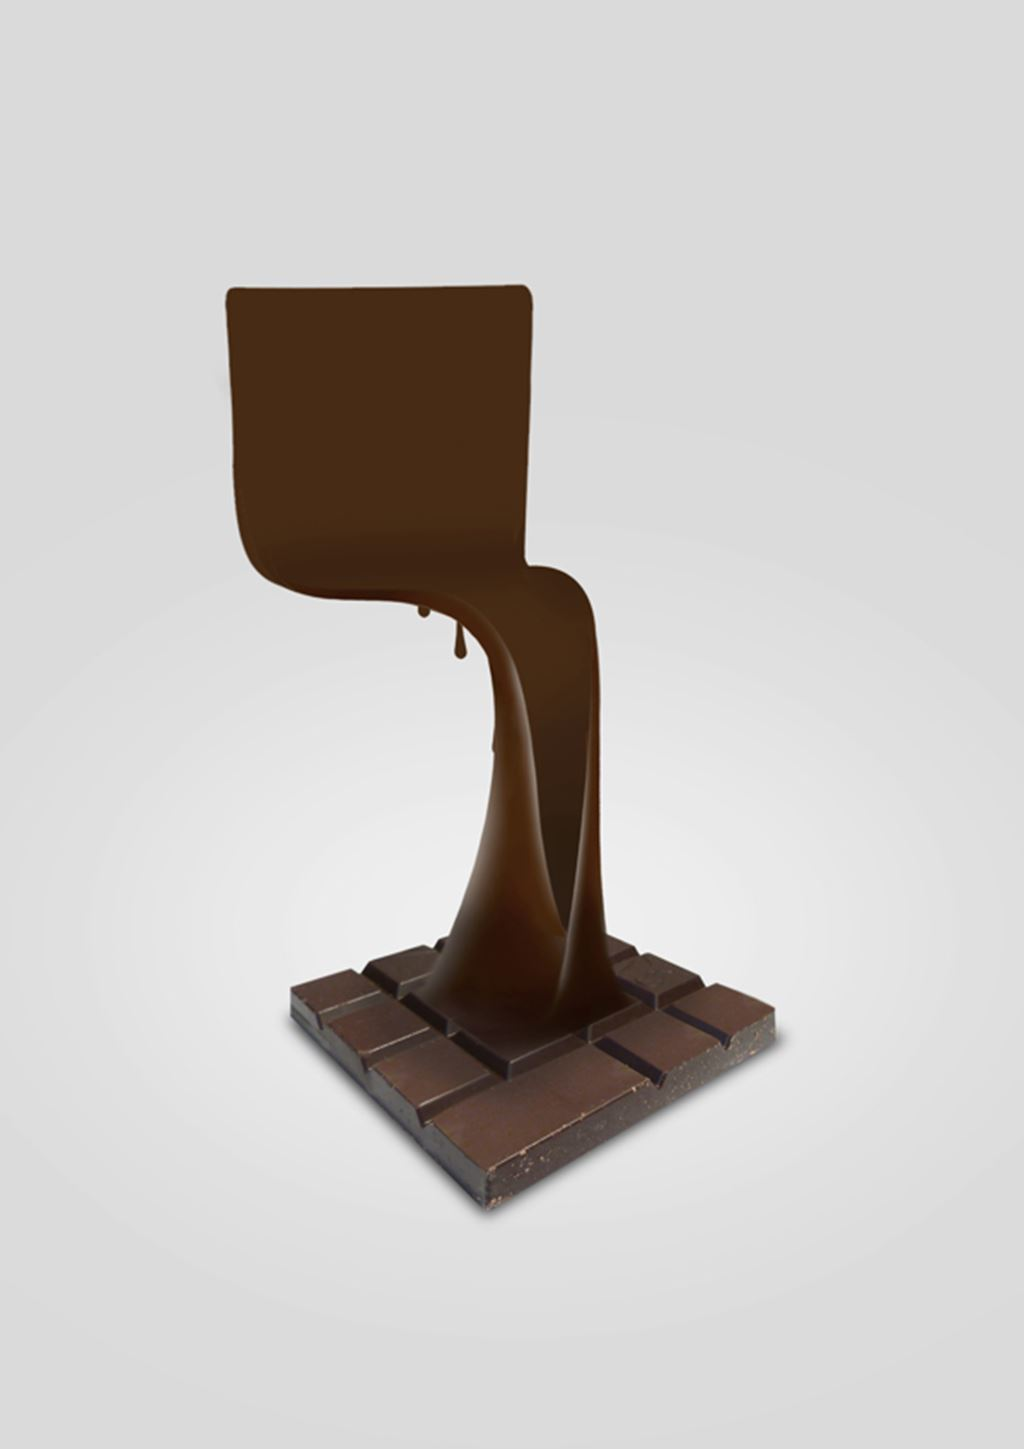 Amazing stylized furniture by haris jusovic for Most amazing furniture design